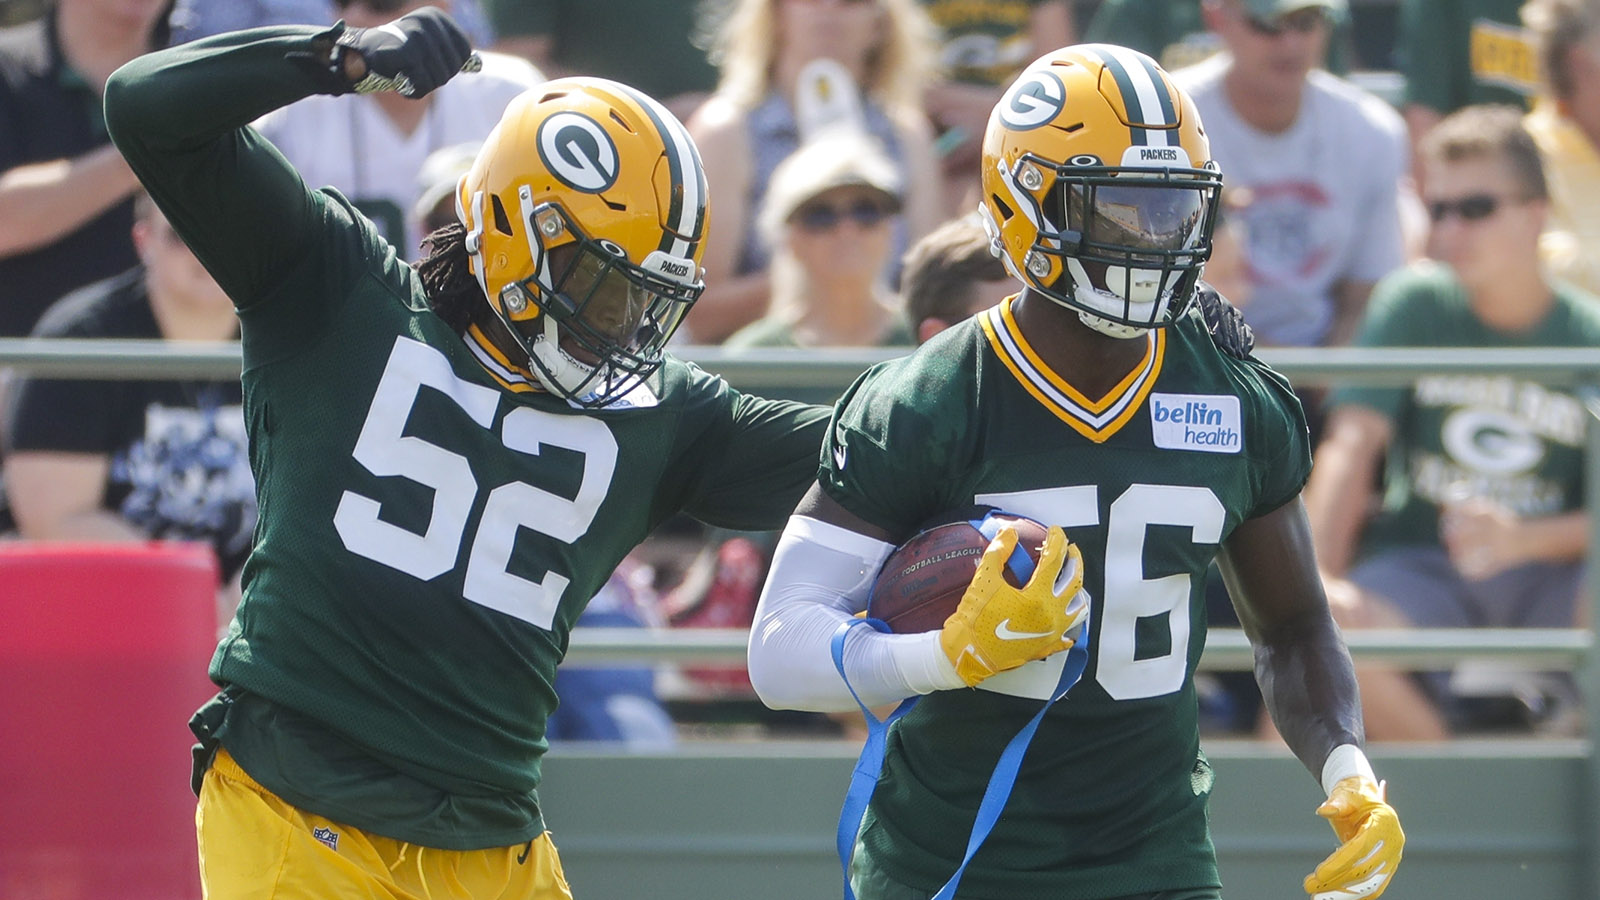 Green Bay Packers' Rashan Gary knocks the ball from Randy Ramsey during NFL football training camp Thursday, July 25, 2019, in Green Bay, Wis. (AP Photo/Morry Gash)